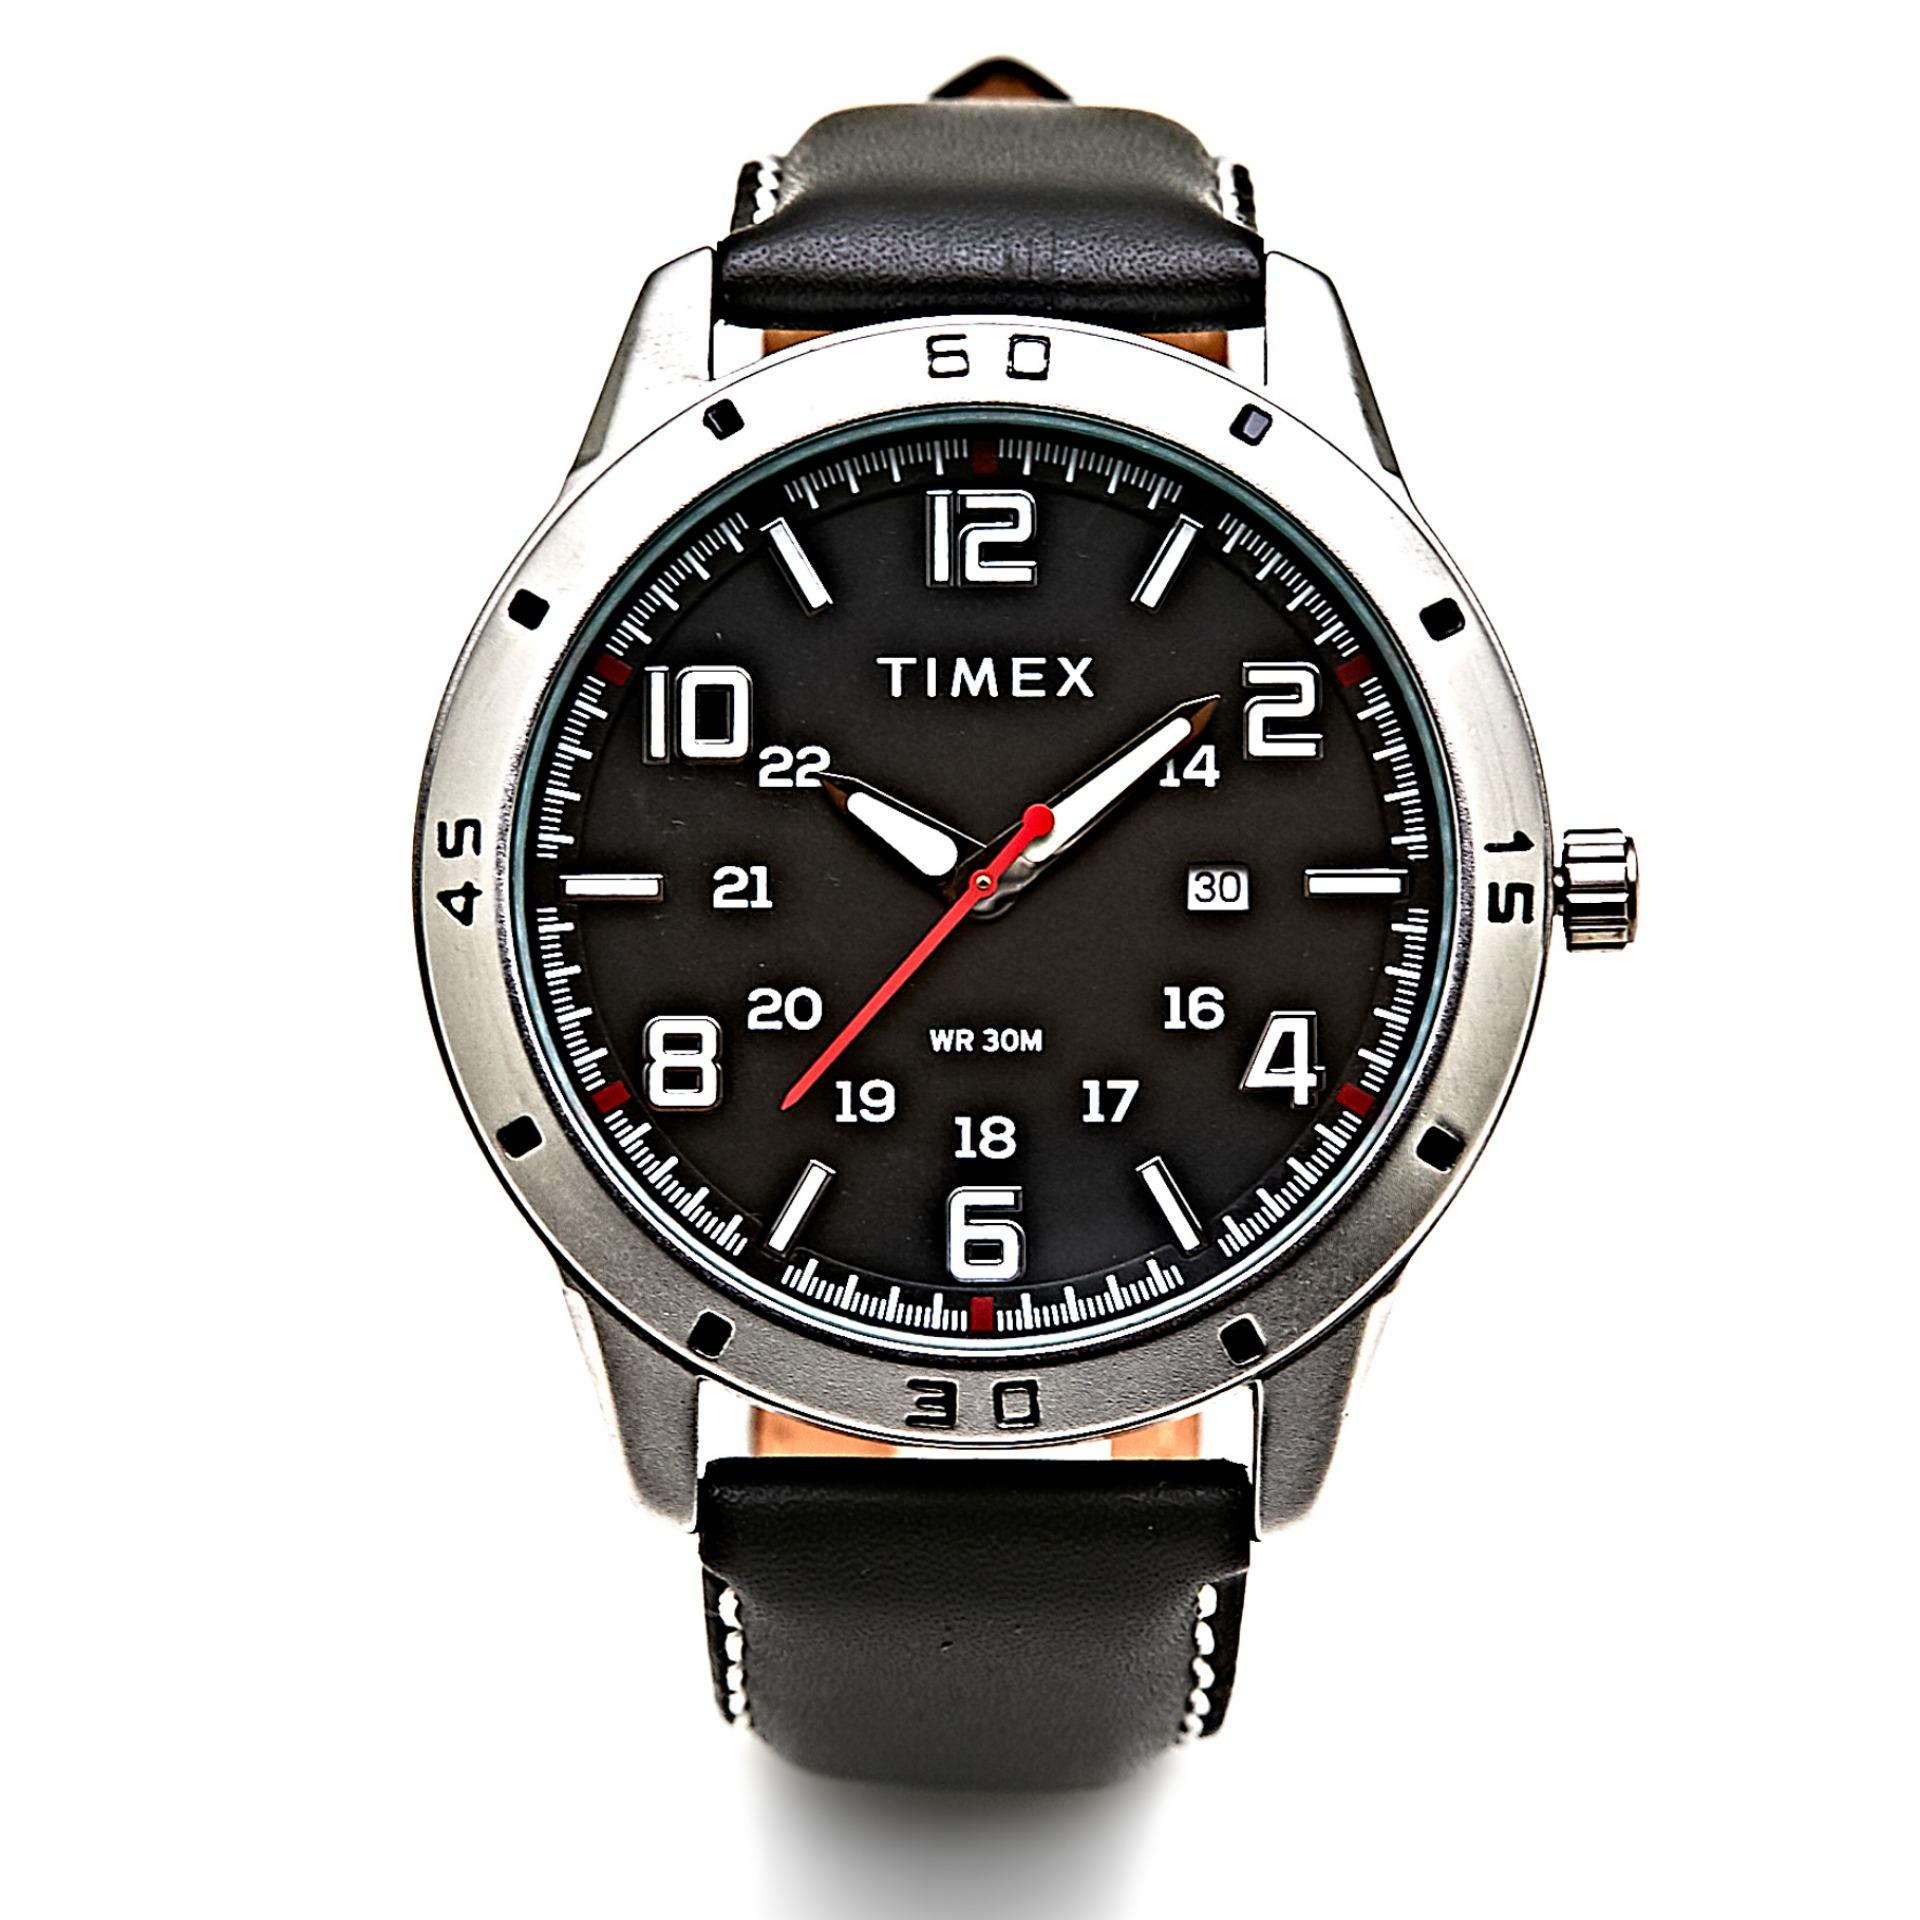 86c6cf310992 Timex Philippines - Timex Watches for sale - prices   reviews